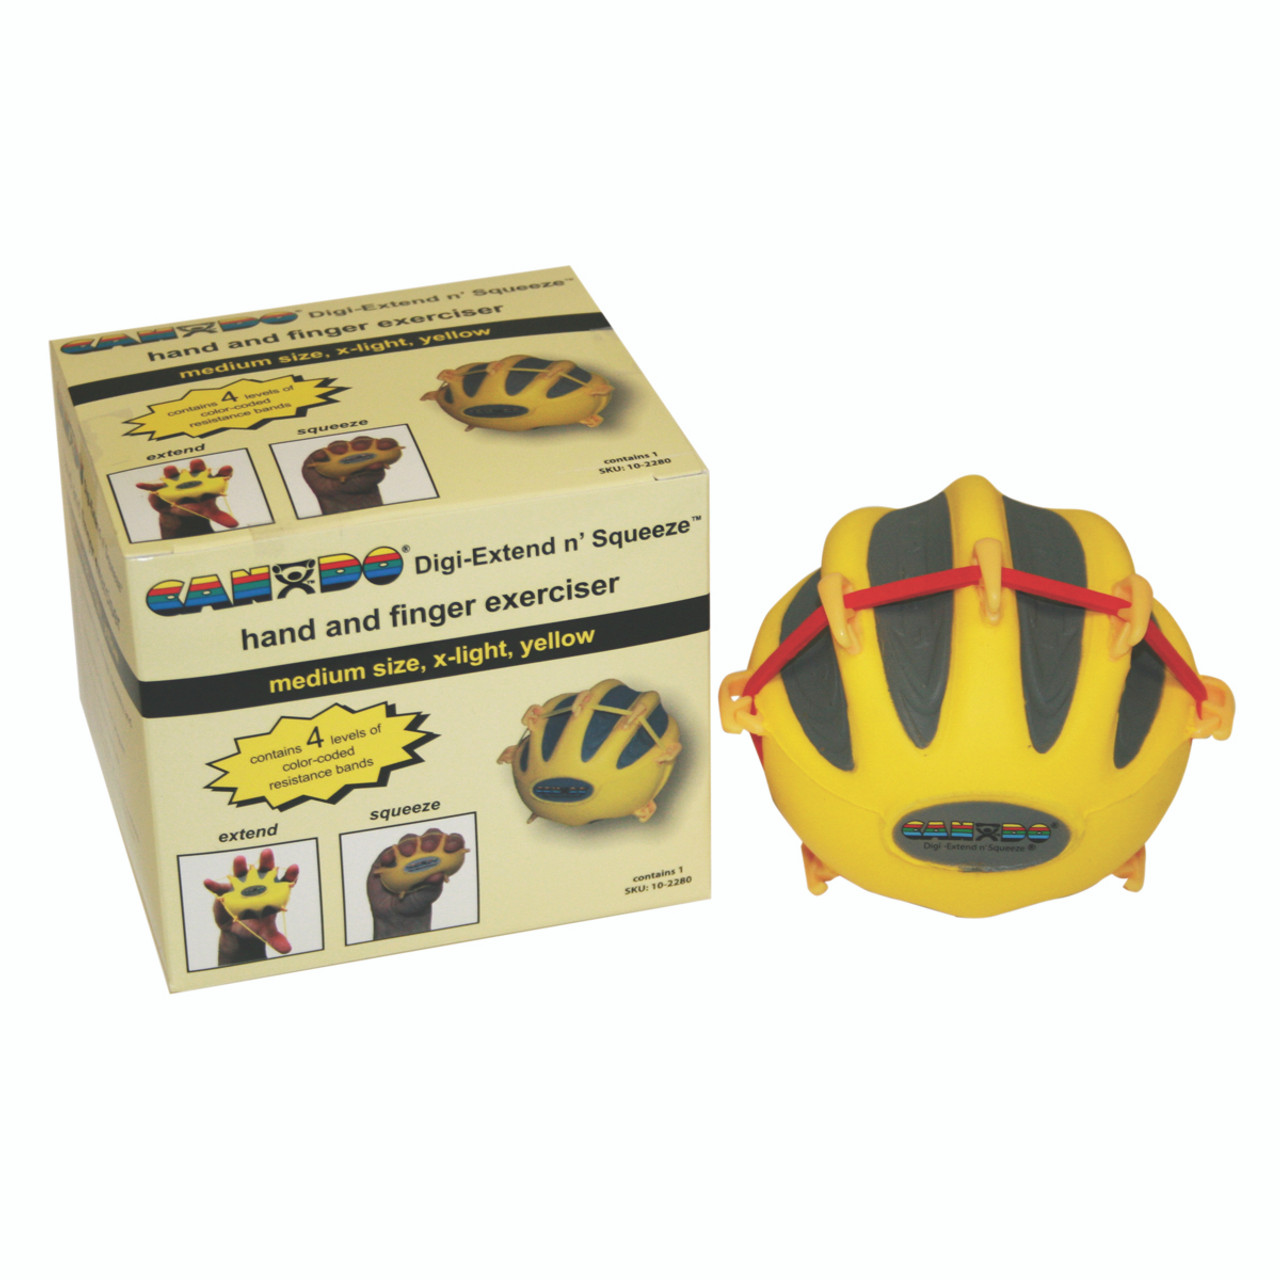 CanDo¨ Digi-Extend n' Squeeze¨ Hand Exerciser - Large - Yellow, x-light